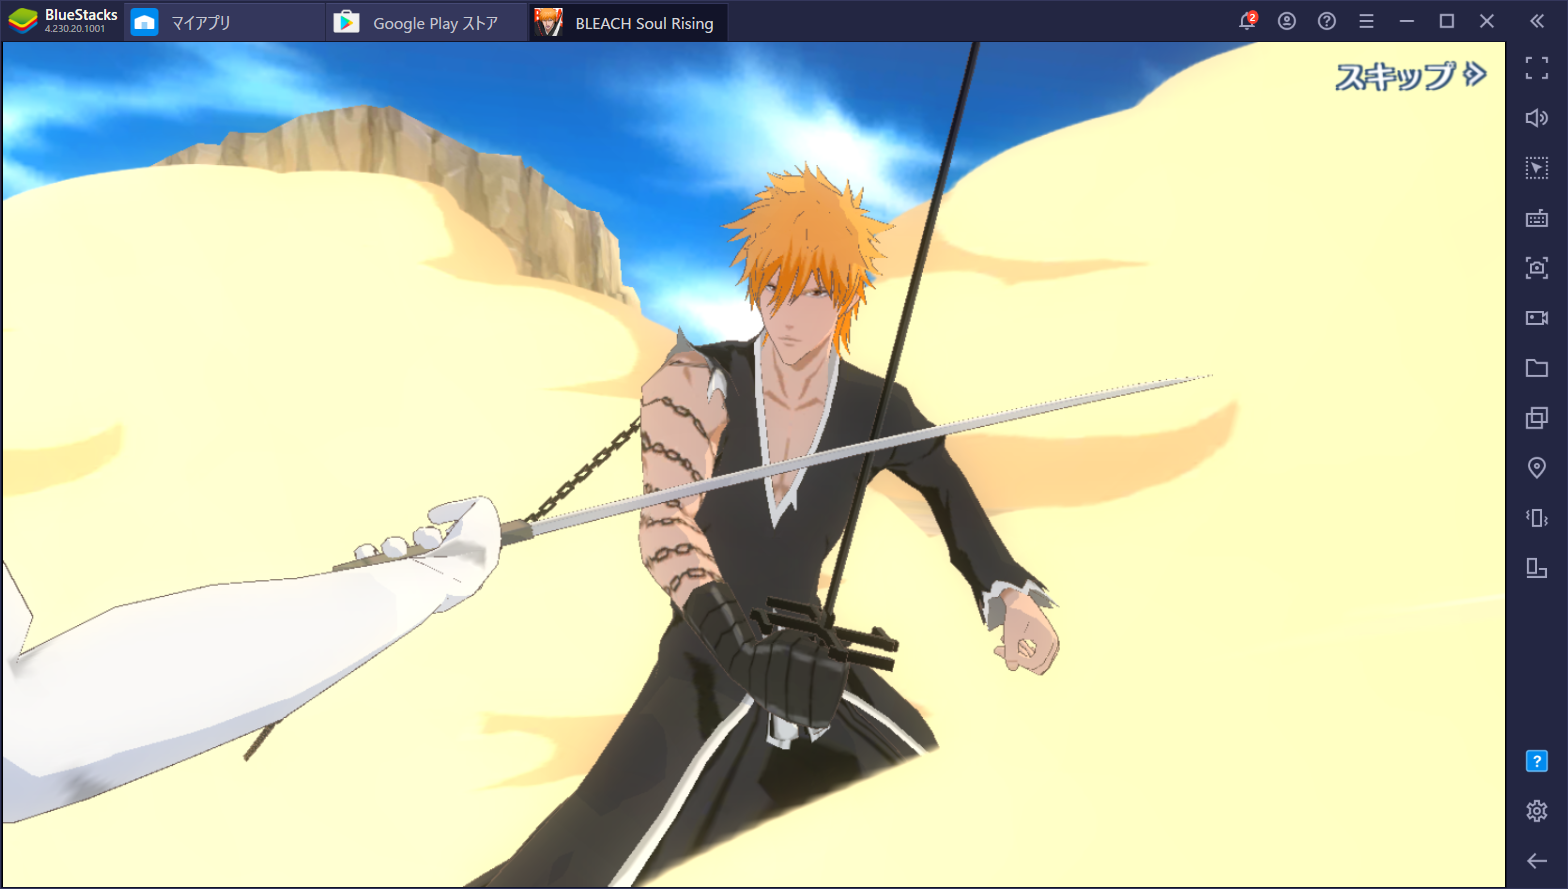 BlueStacksを使ってPCで『BLEACH Soul Rising』を遊ぼう